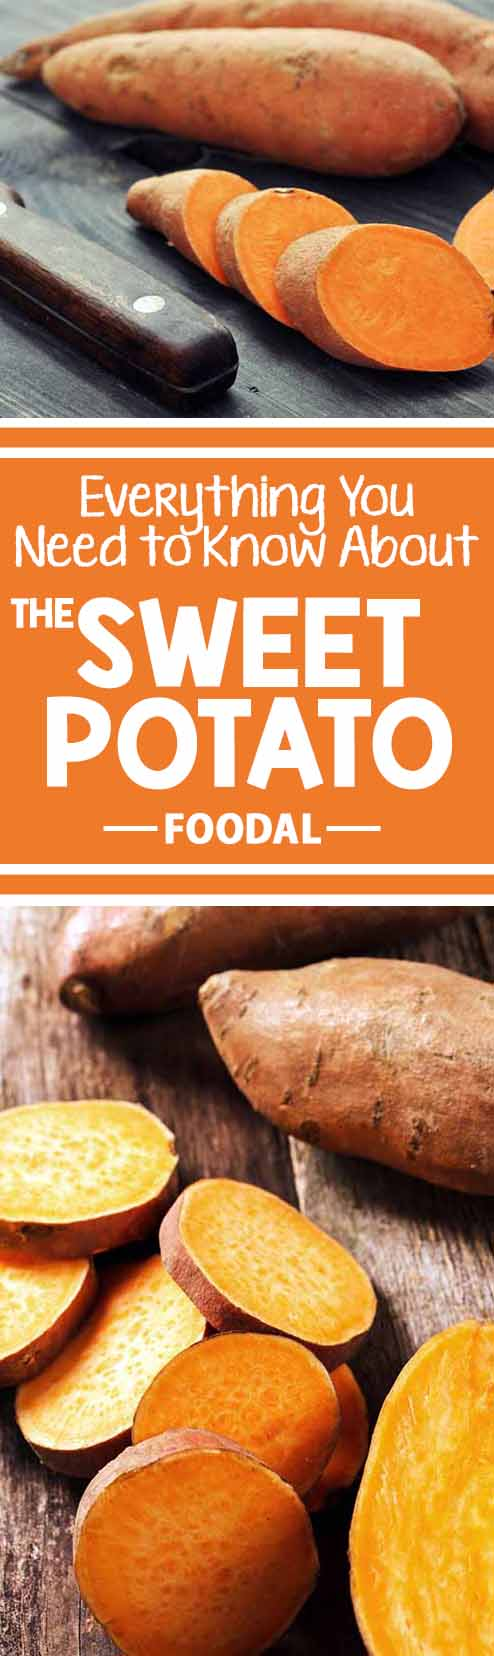 Stumped about the sweet potato? Is it a root or a tuber? Is it even related to other potatoes? There is so much to learn about this veggie, and Foodal has all the info you need! Before you start planning your fall favorites like creamy pies and marshmallow-topped casserole dishes, take a look at this article to read all about its tasty history, nutritional value, storage, and more. Continue reading now: http://foodal.com/knowledge/paleo/everything-about-sweet-potato/